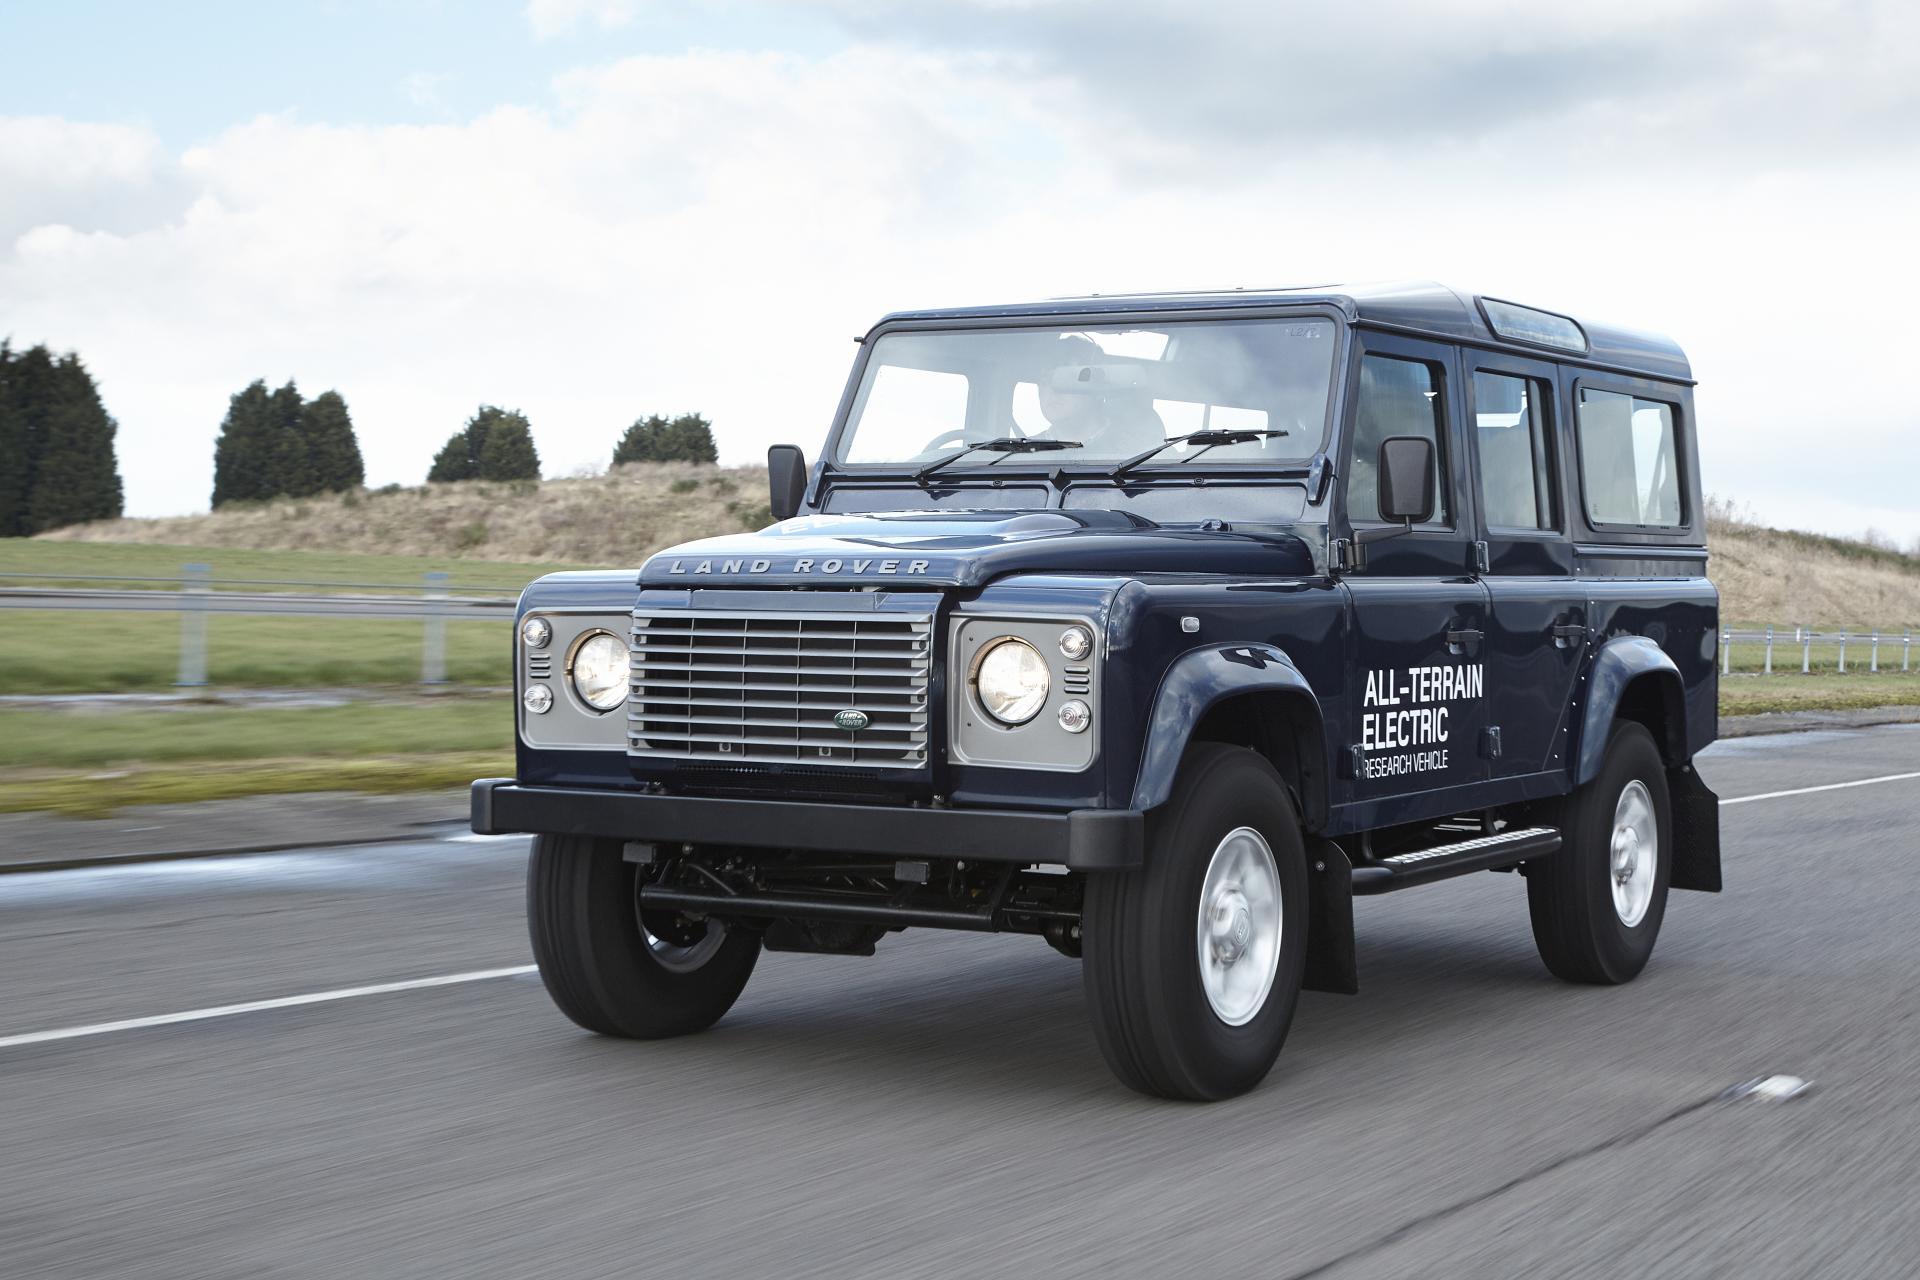 2013 Land Rover Rover Defender Electric Concept News